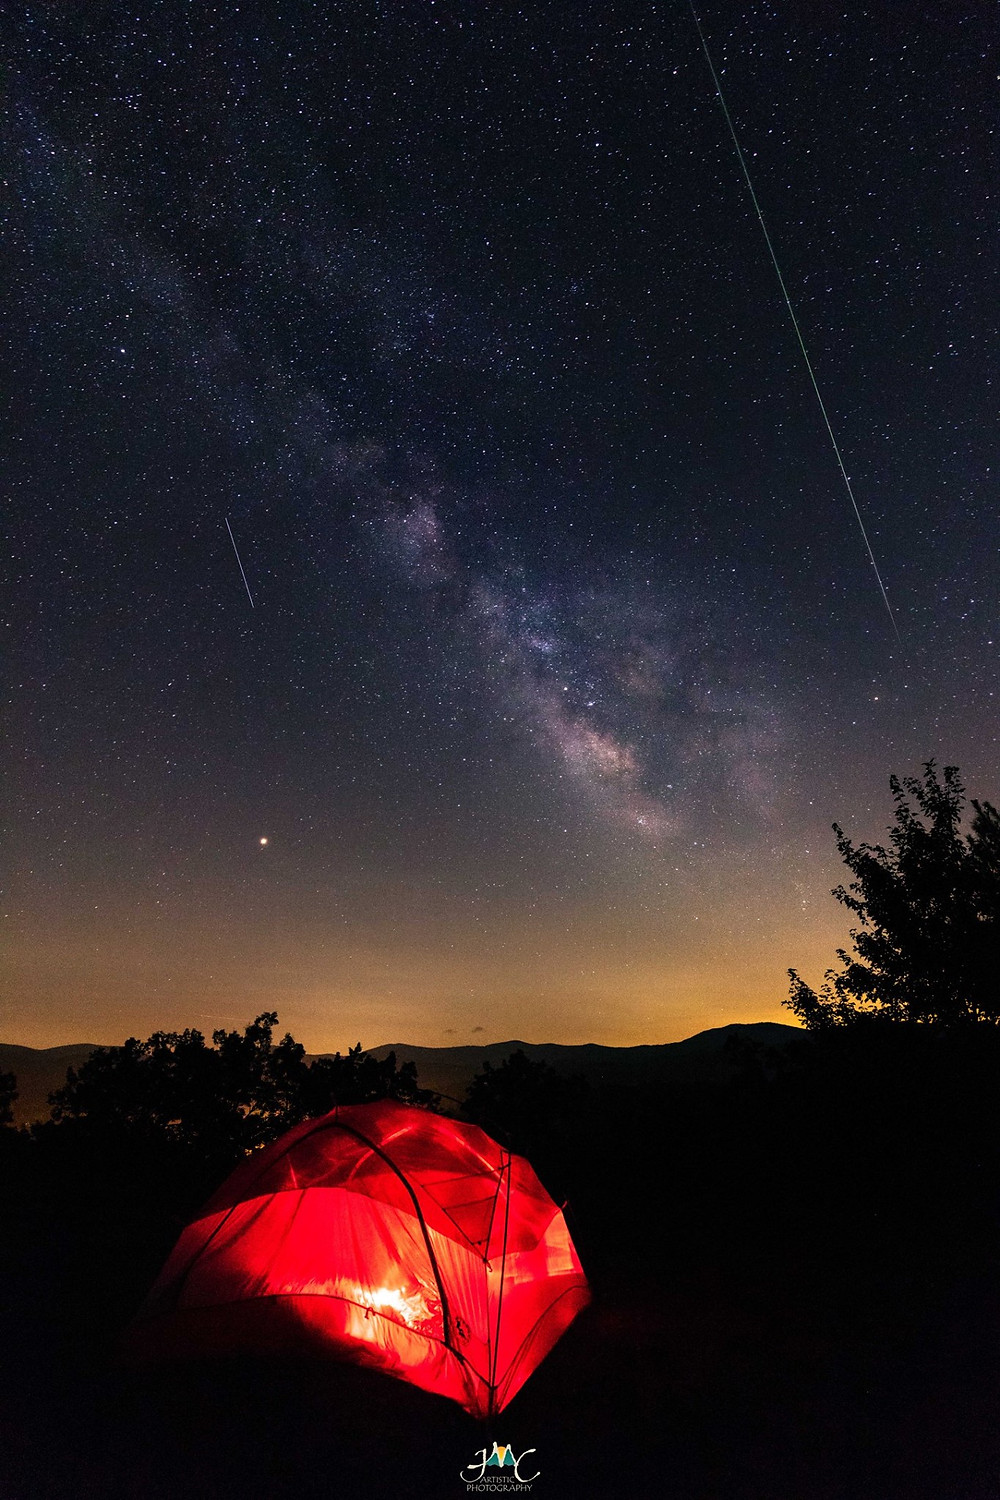 Our tent with mountains, Mars & meteors as a backdrop